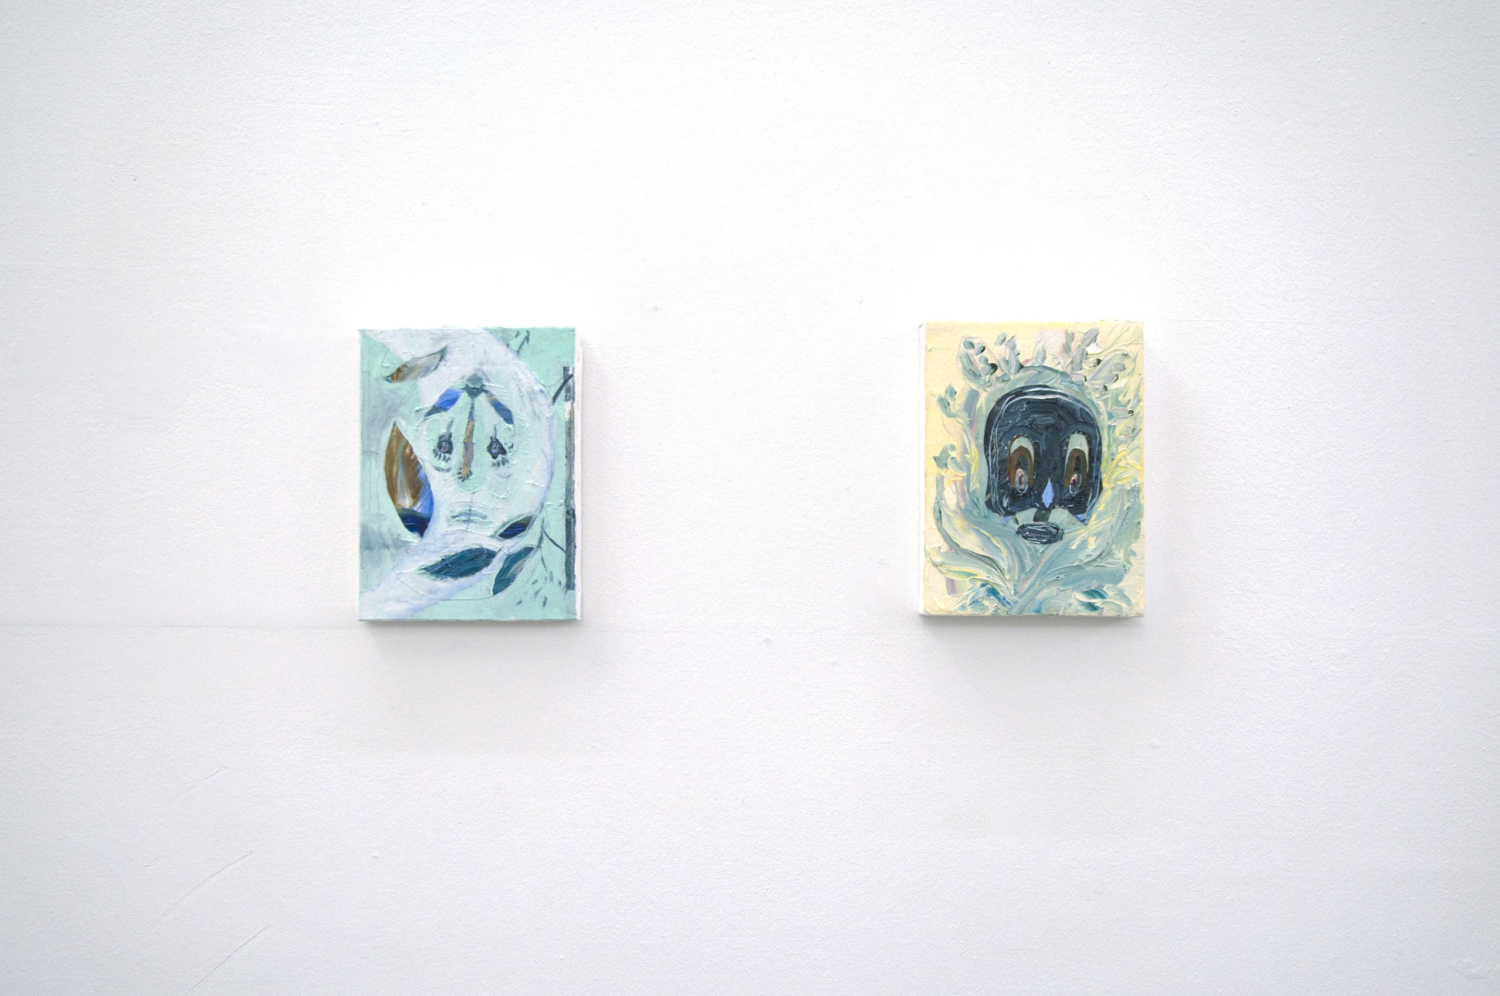 fia cielen, dmw gallery, this place displaced, group show